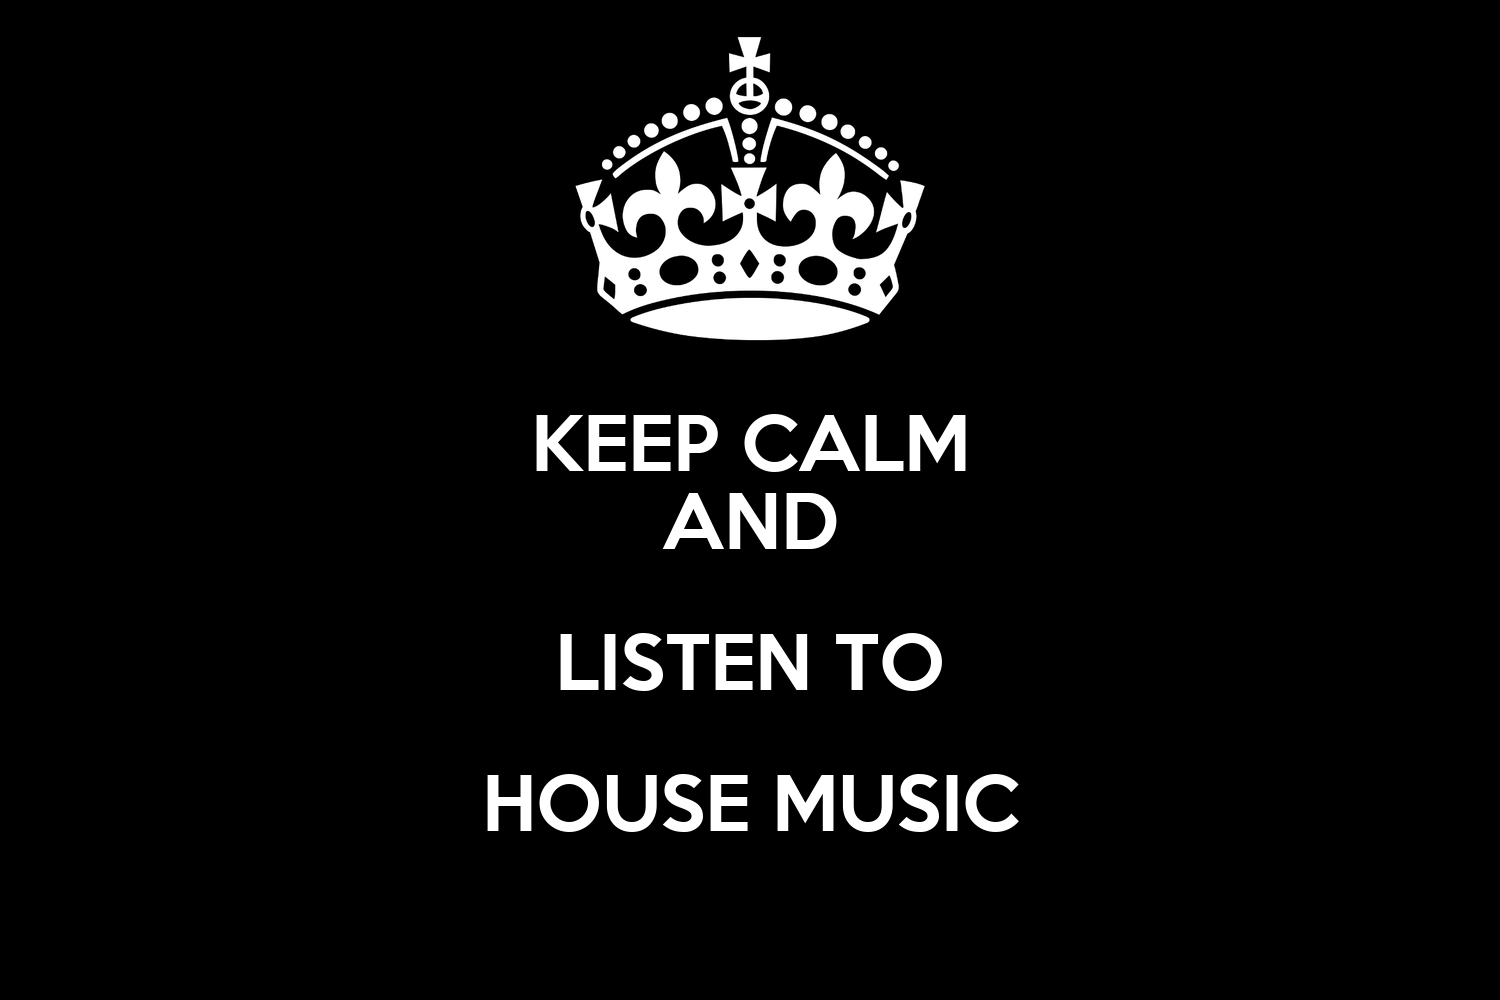 Keep calm and listen to house music poster harvey keep for Listen to house music